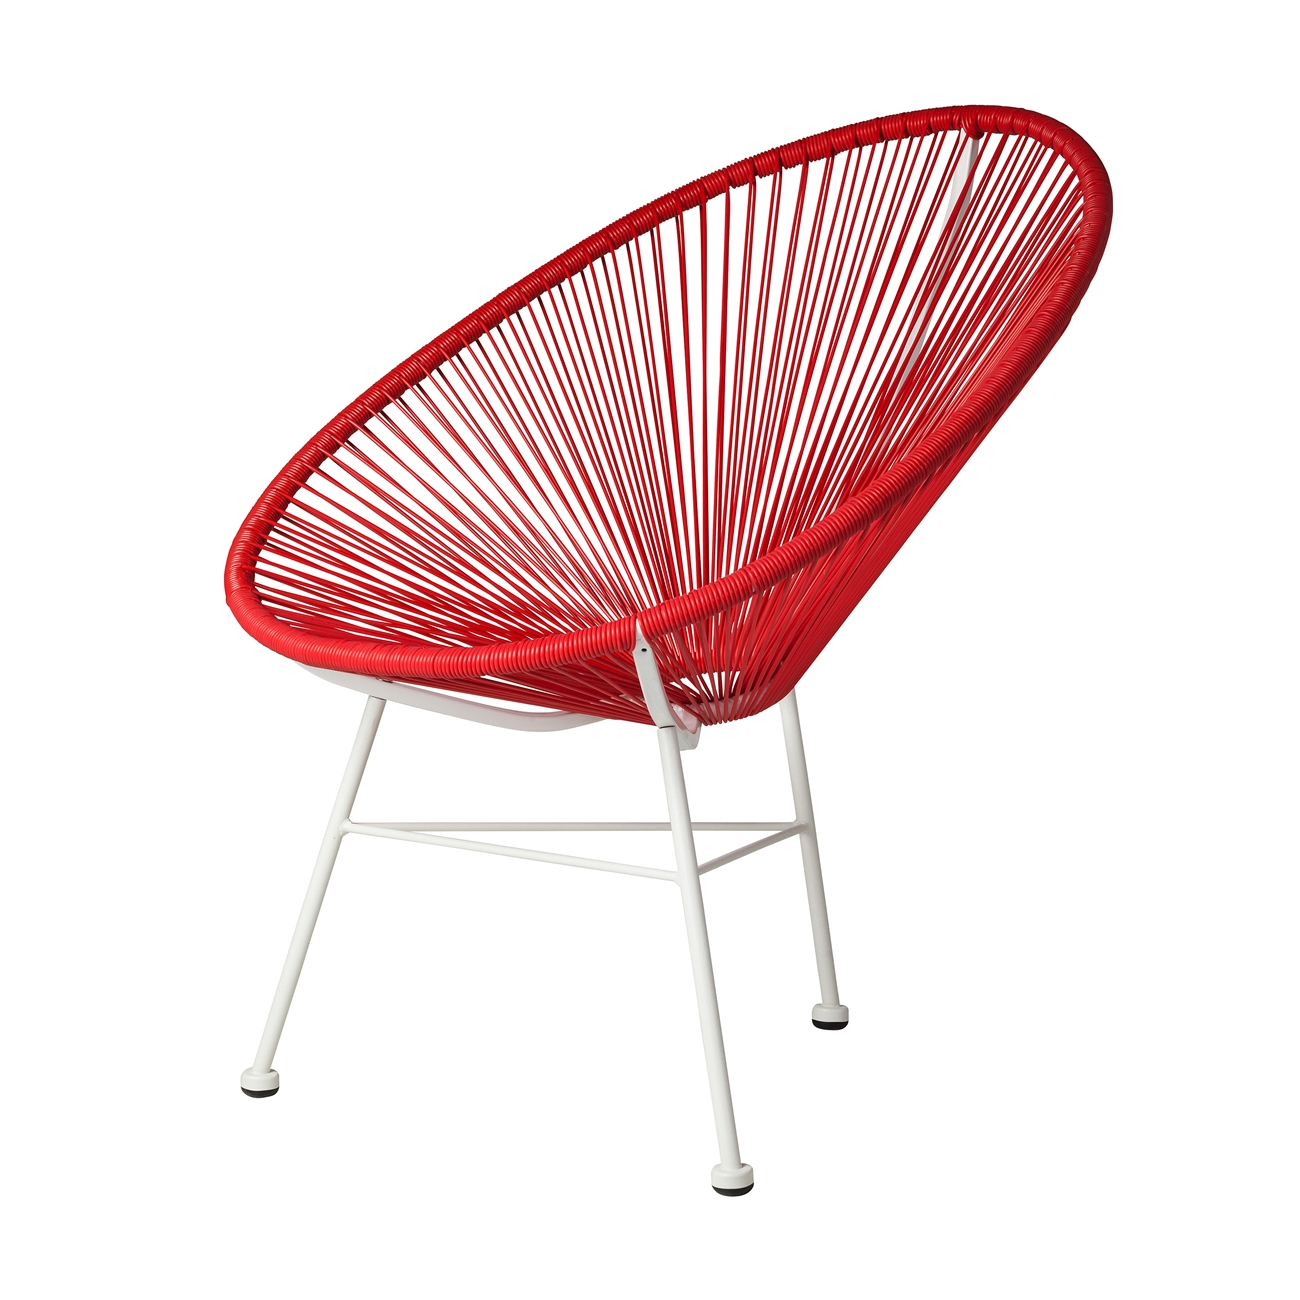 Surprising Acapulco Indoor Outdoor Lounge Chair Red Weave On White Frame Spiritservingveterans Wood Chair Design Ideas Spiritservingveteransorg